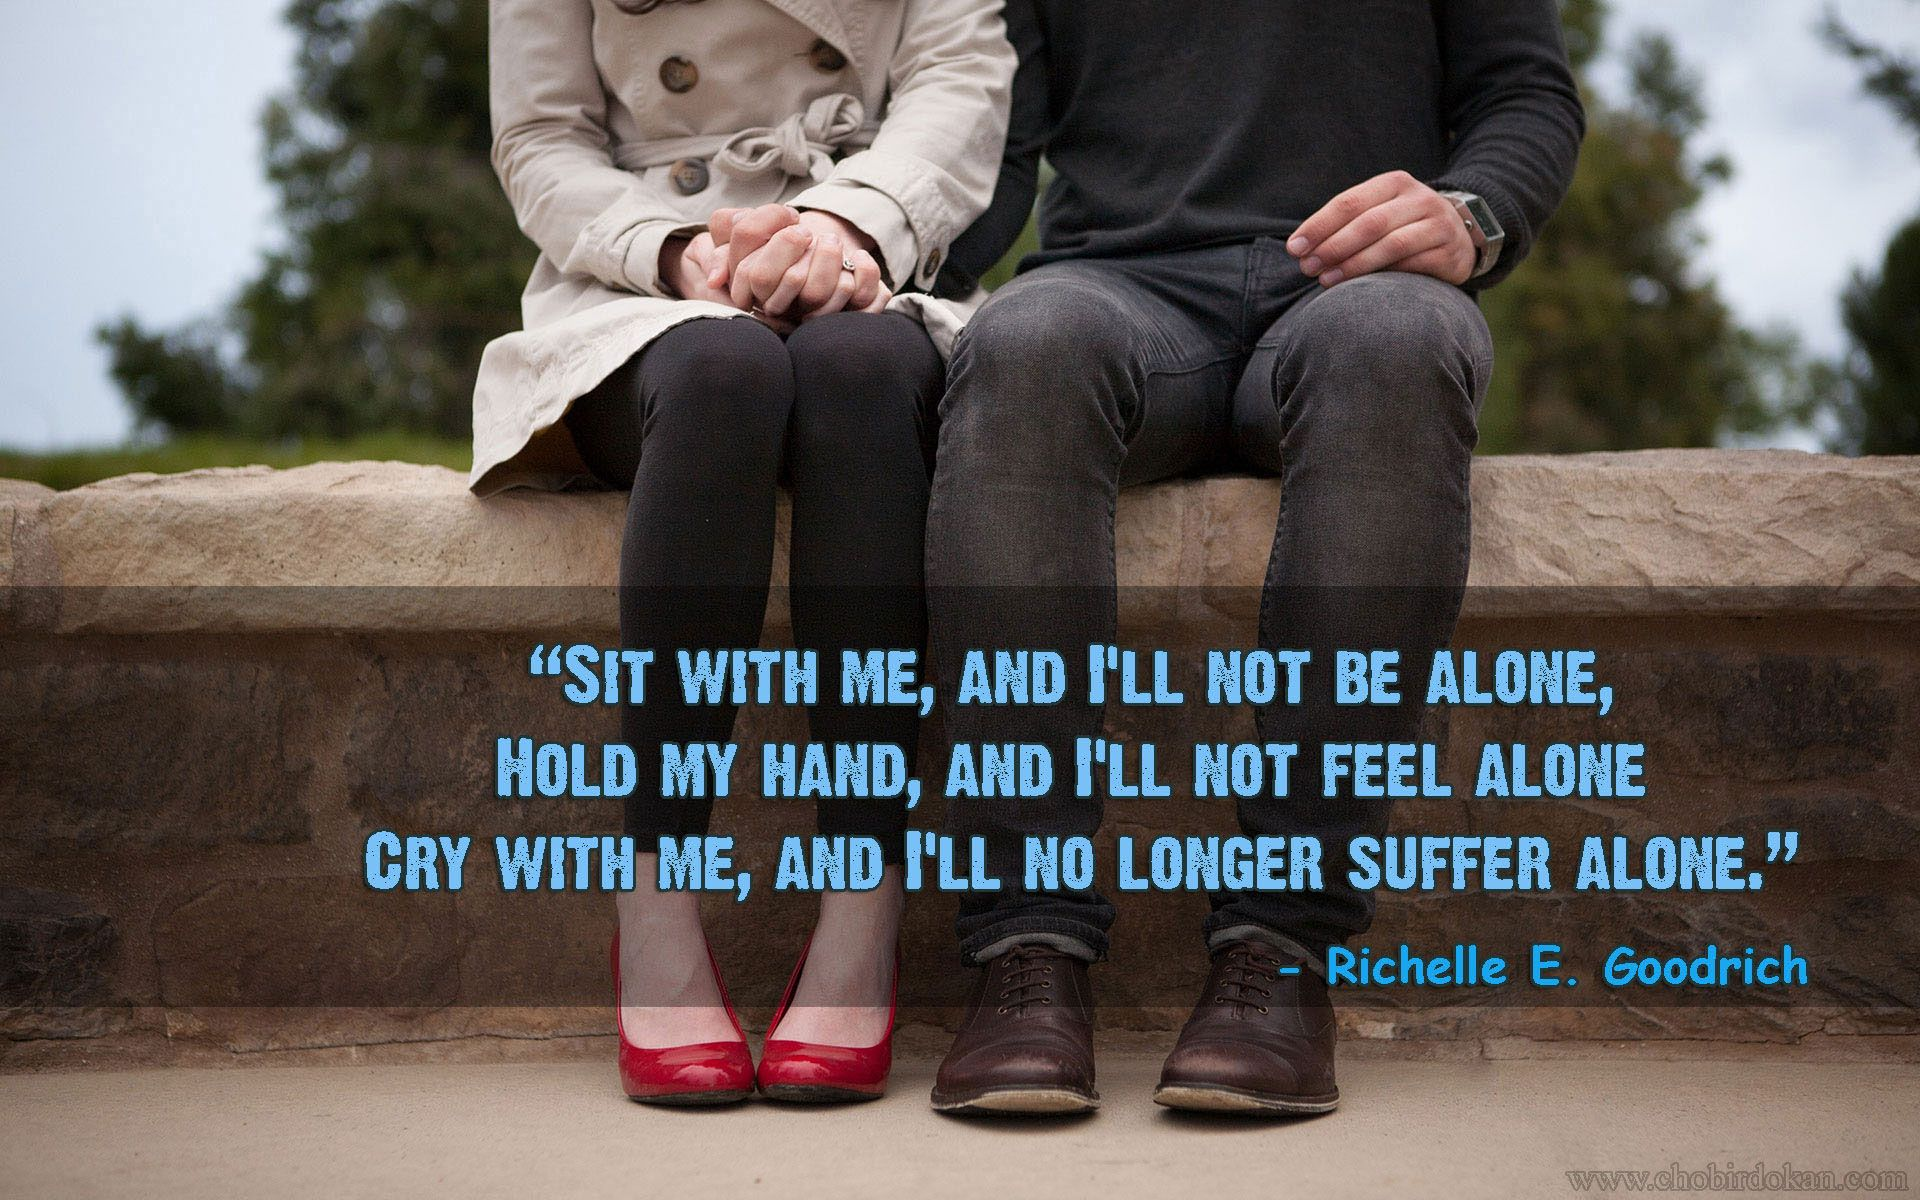 Cute Couple Wallpaper With Quotes Free Cute Wallpapers Love